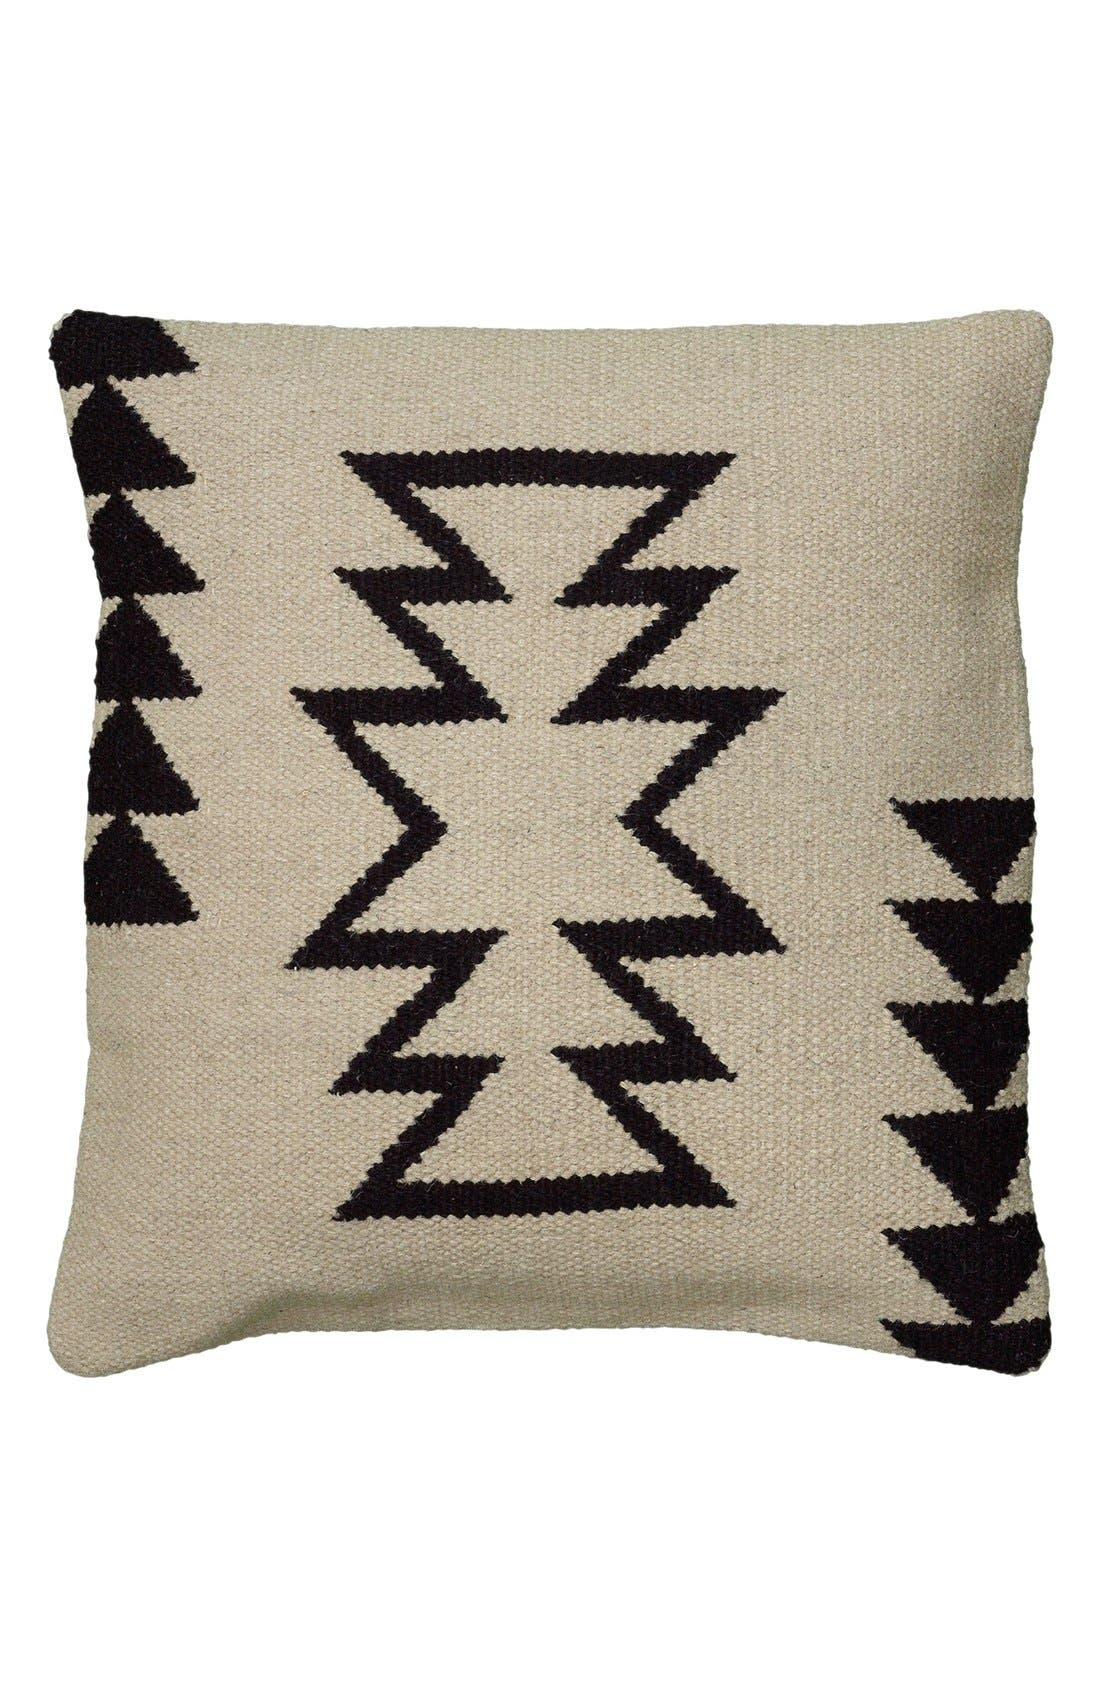 Main Image - Rizzy Home 'Phoenix' Pillow